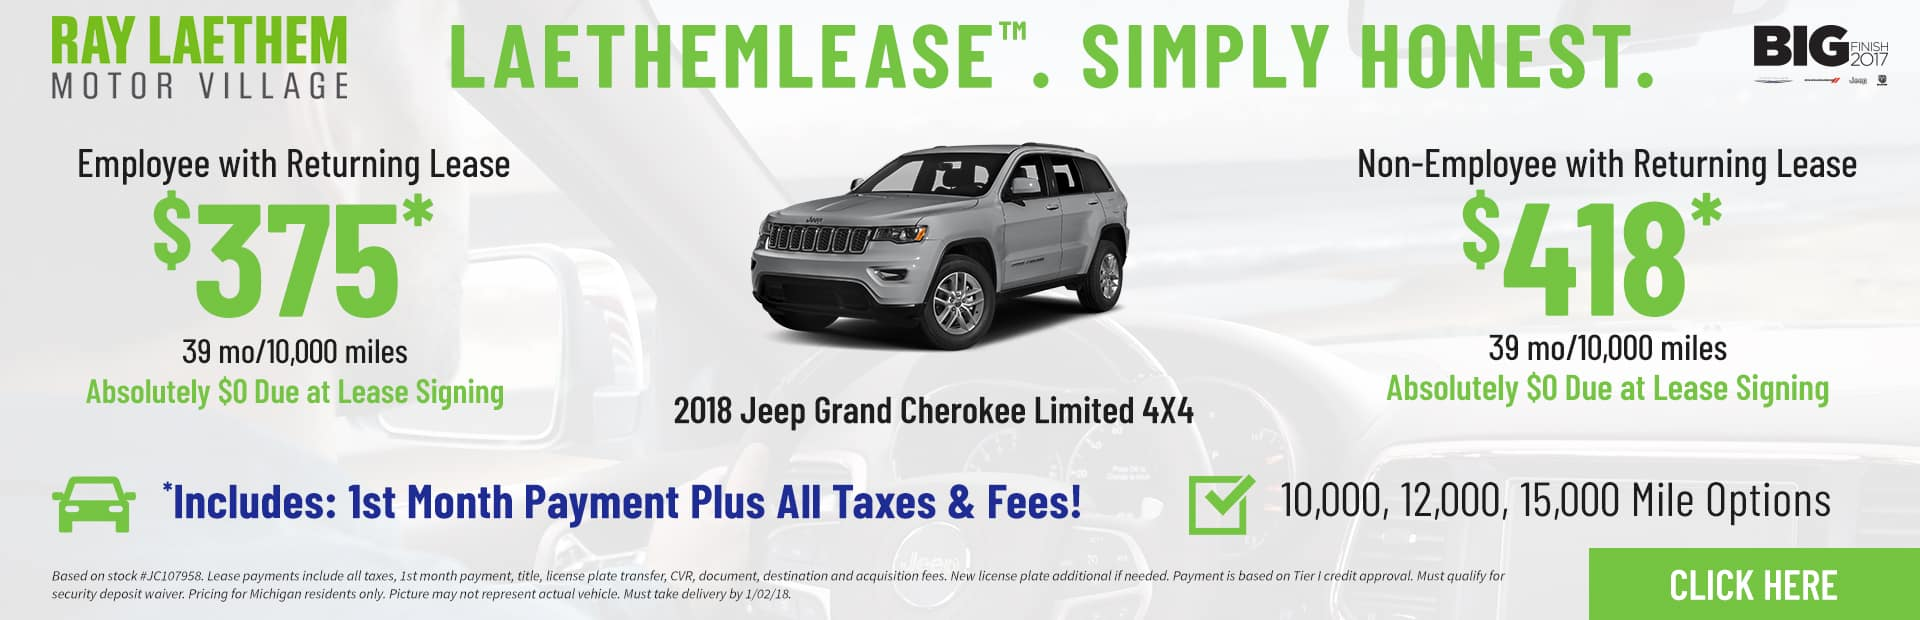 Grand Cherokee Limited LaethemLease